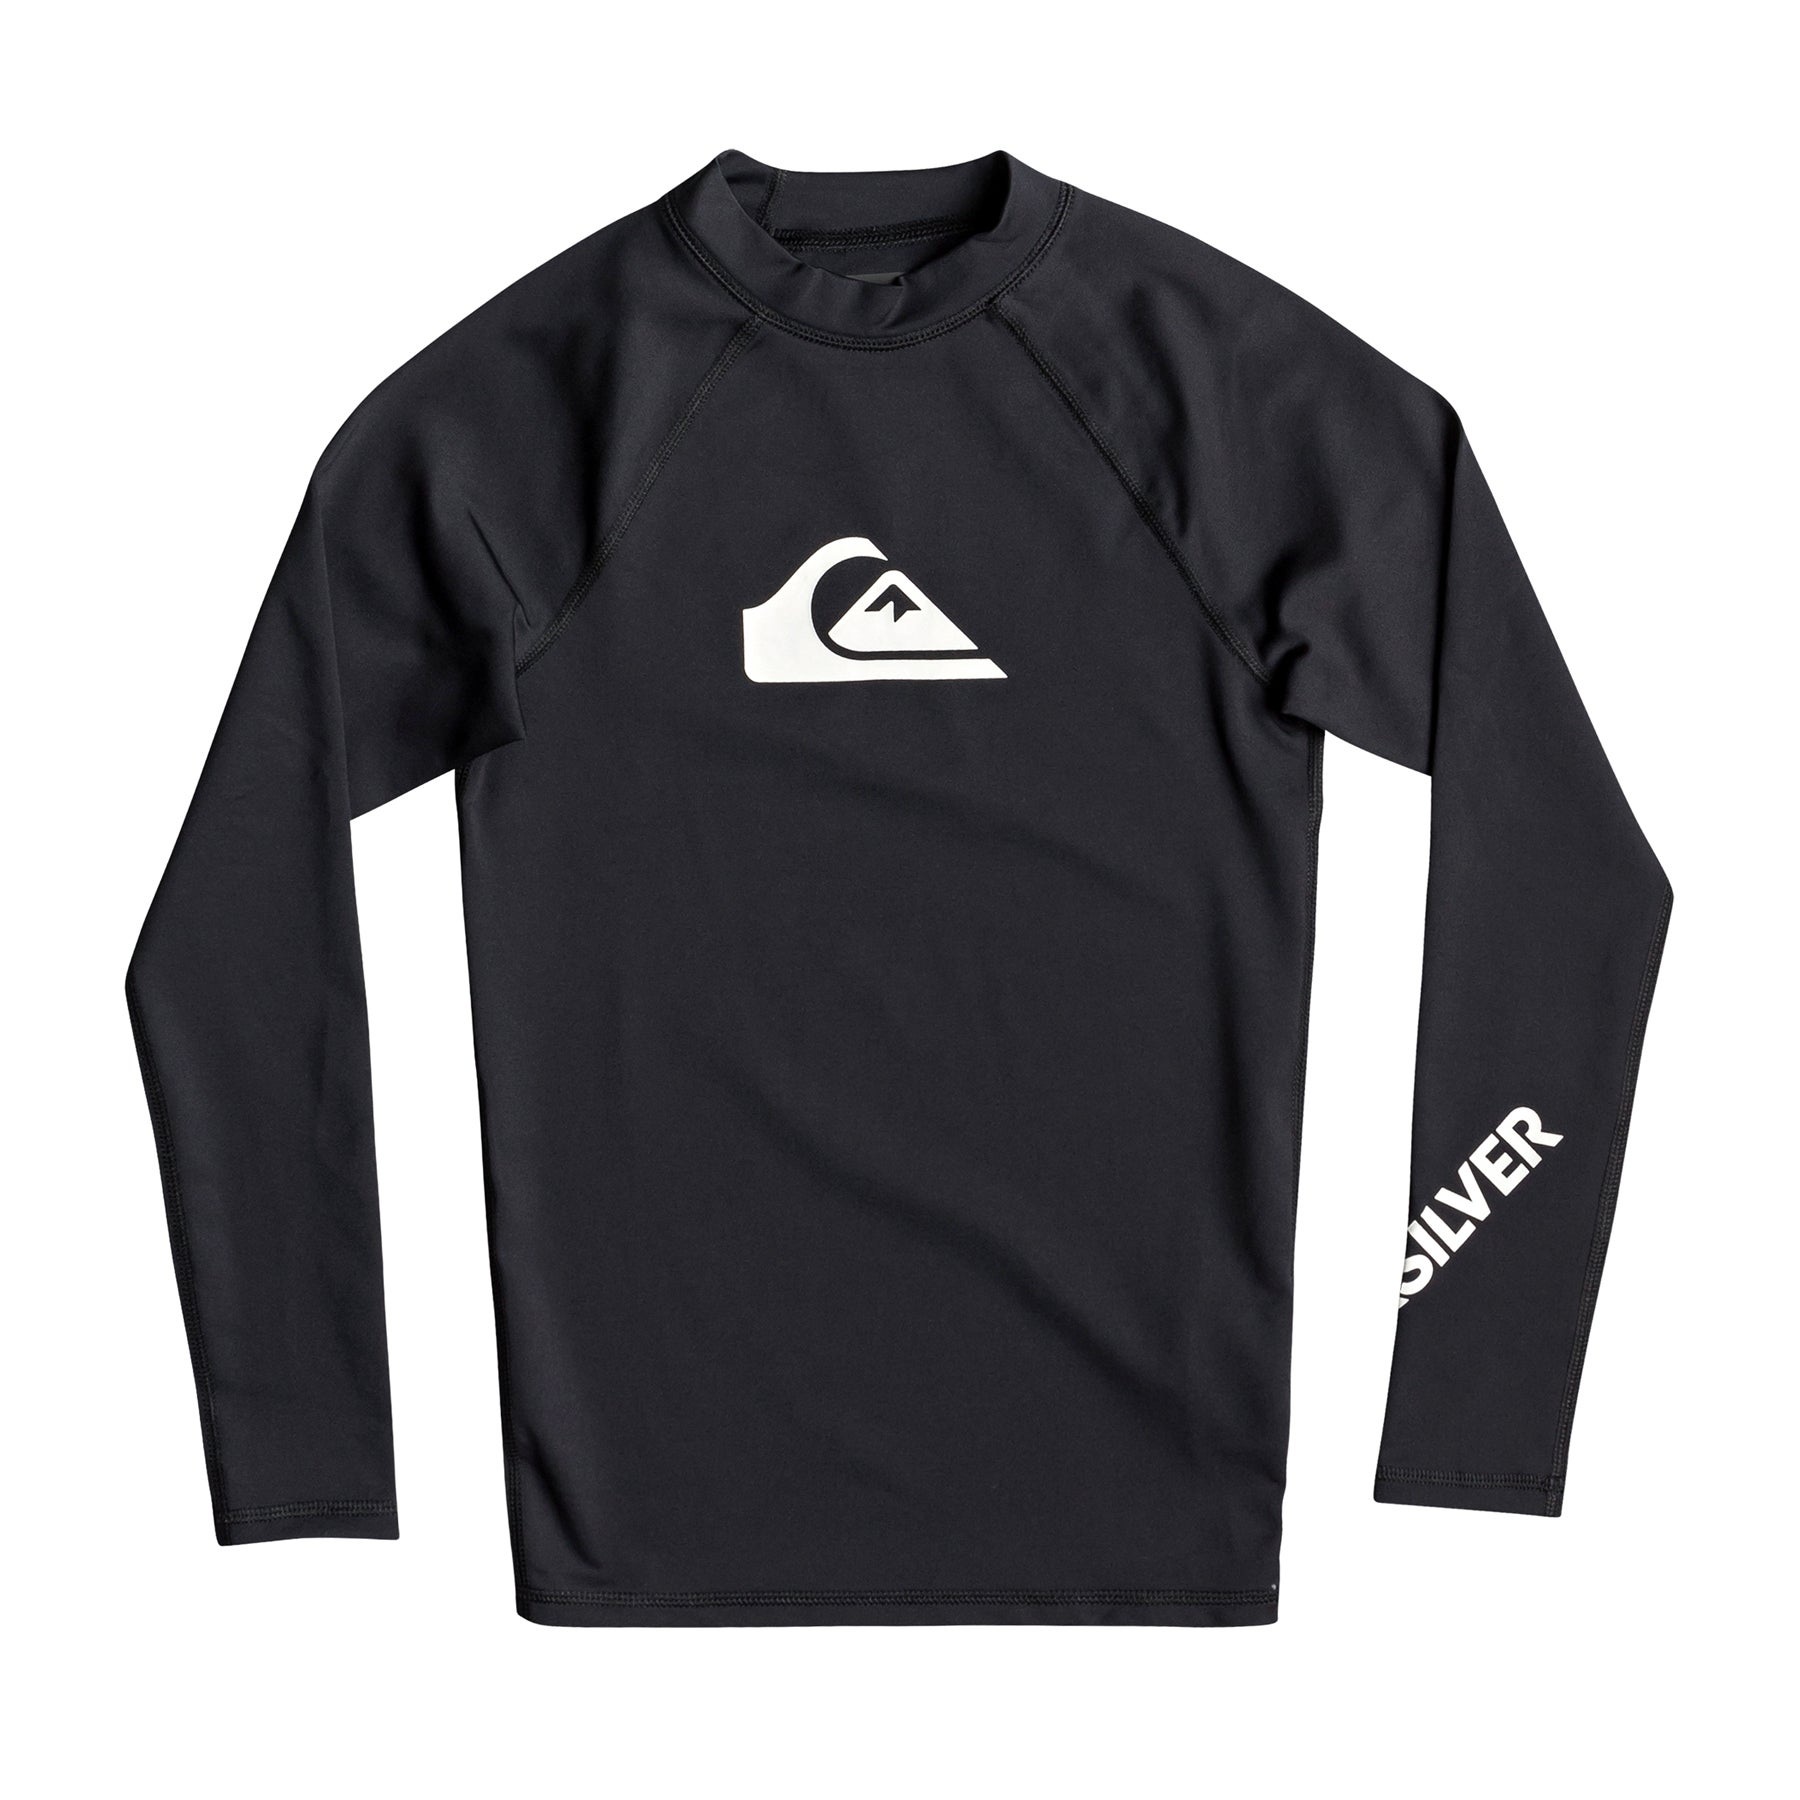 Quiksilver All Time Long Sleeve UPF 50 Boys Rash Vest - Black